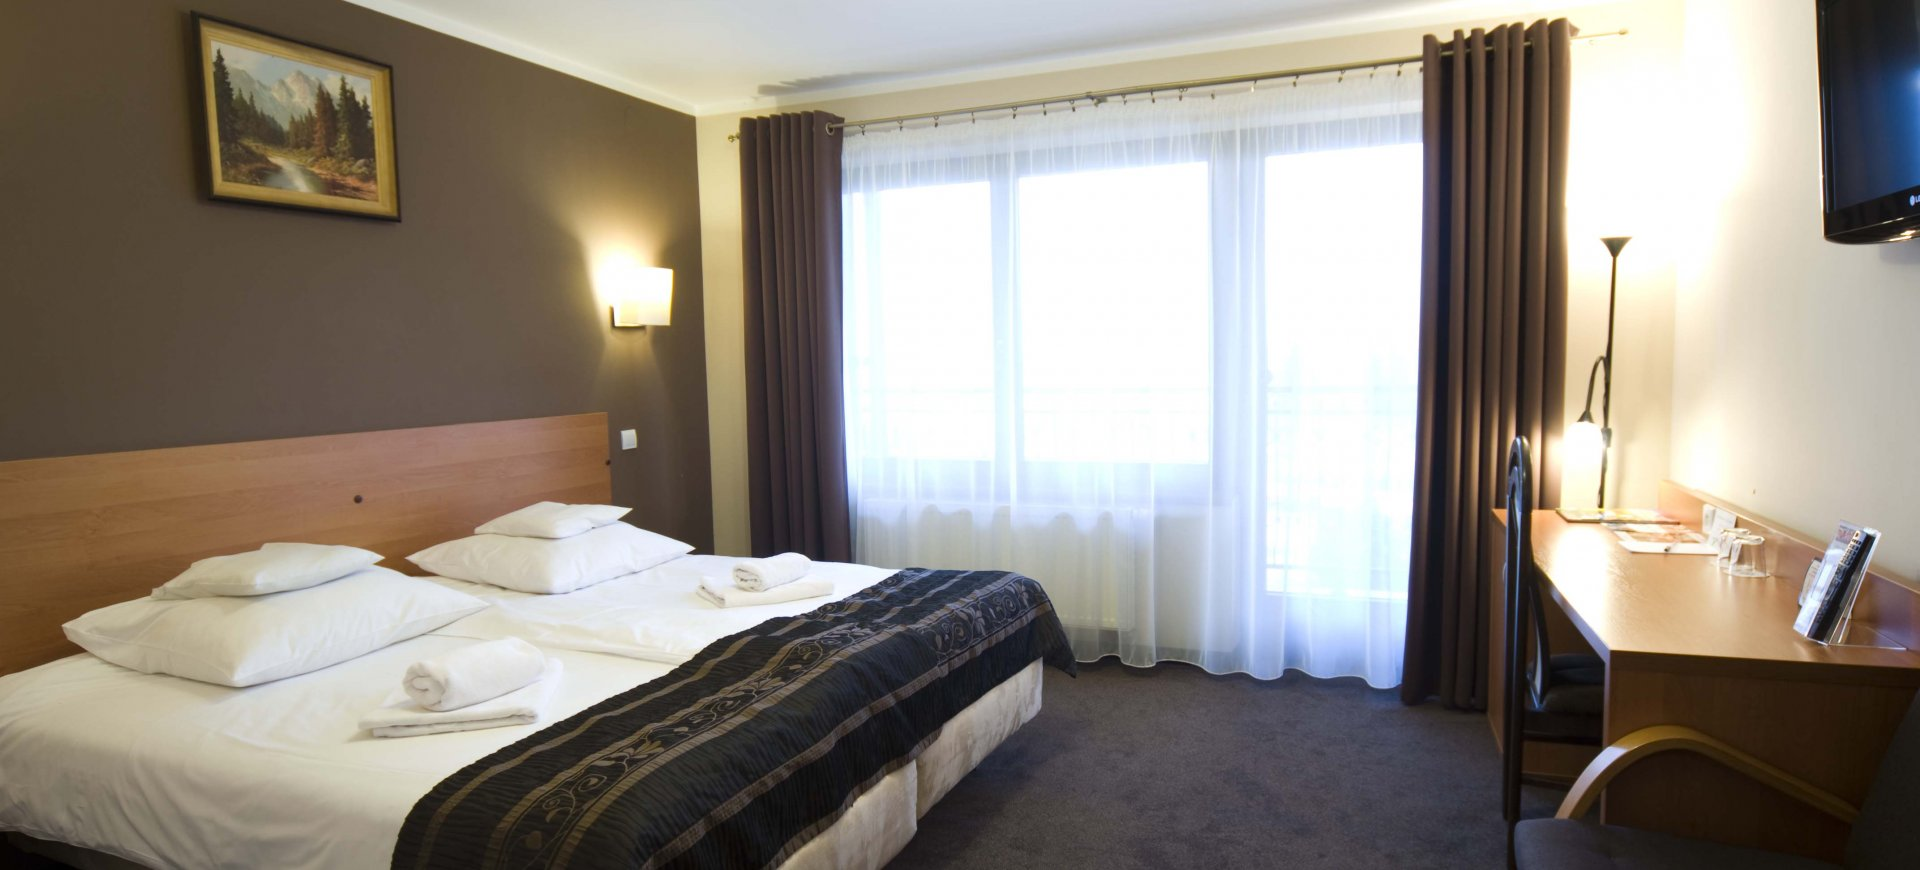 Double room for single usage (***) - 3stars standard